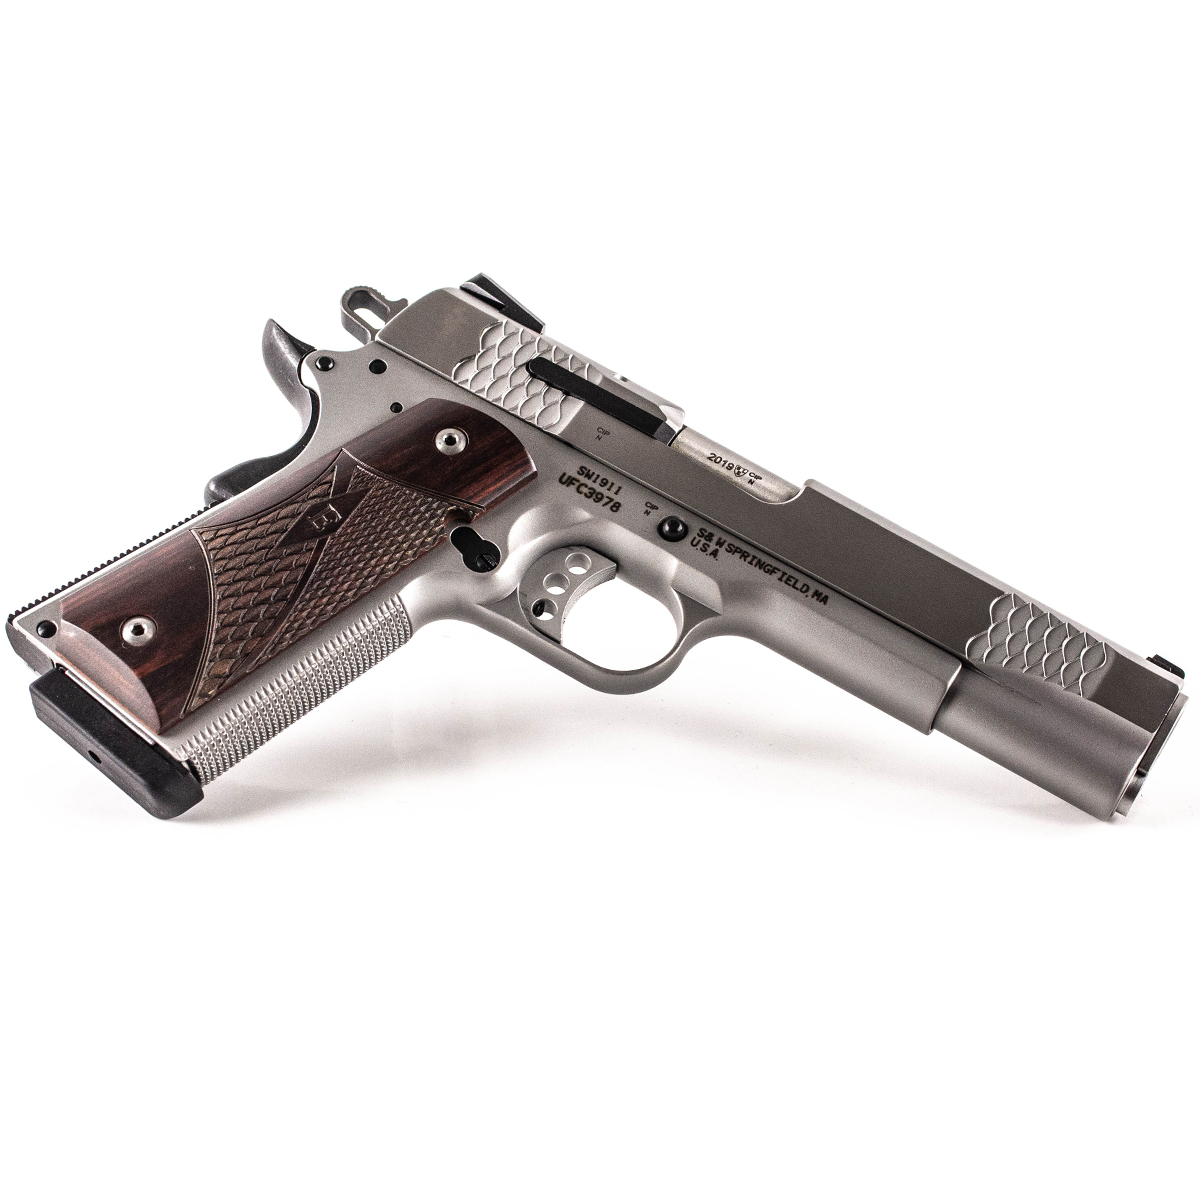 0608_smith&wesson_1911Pc